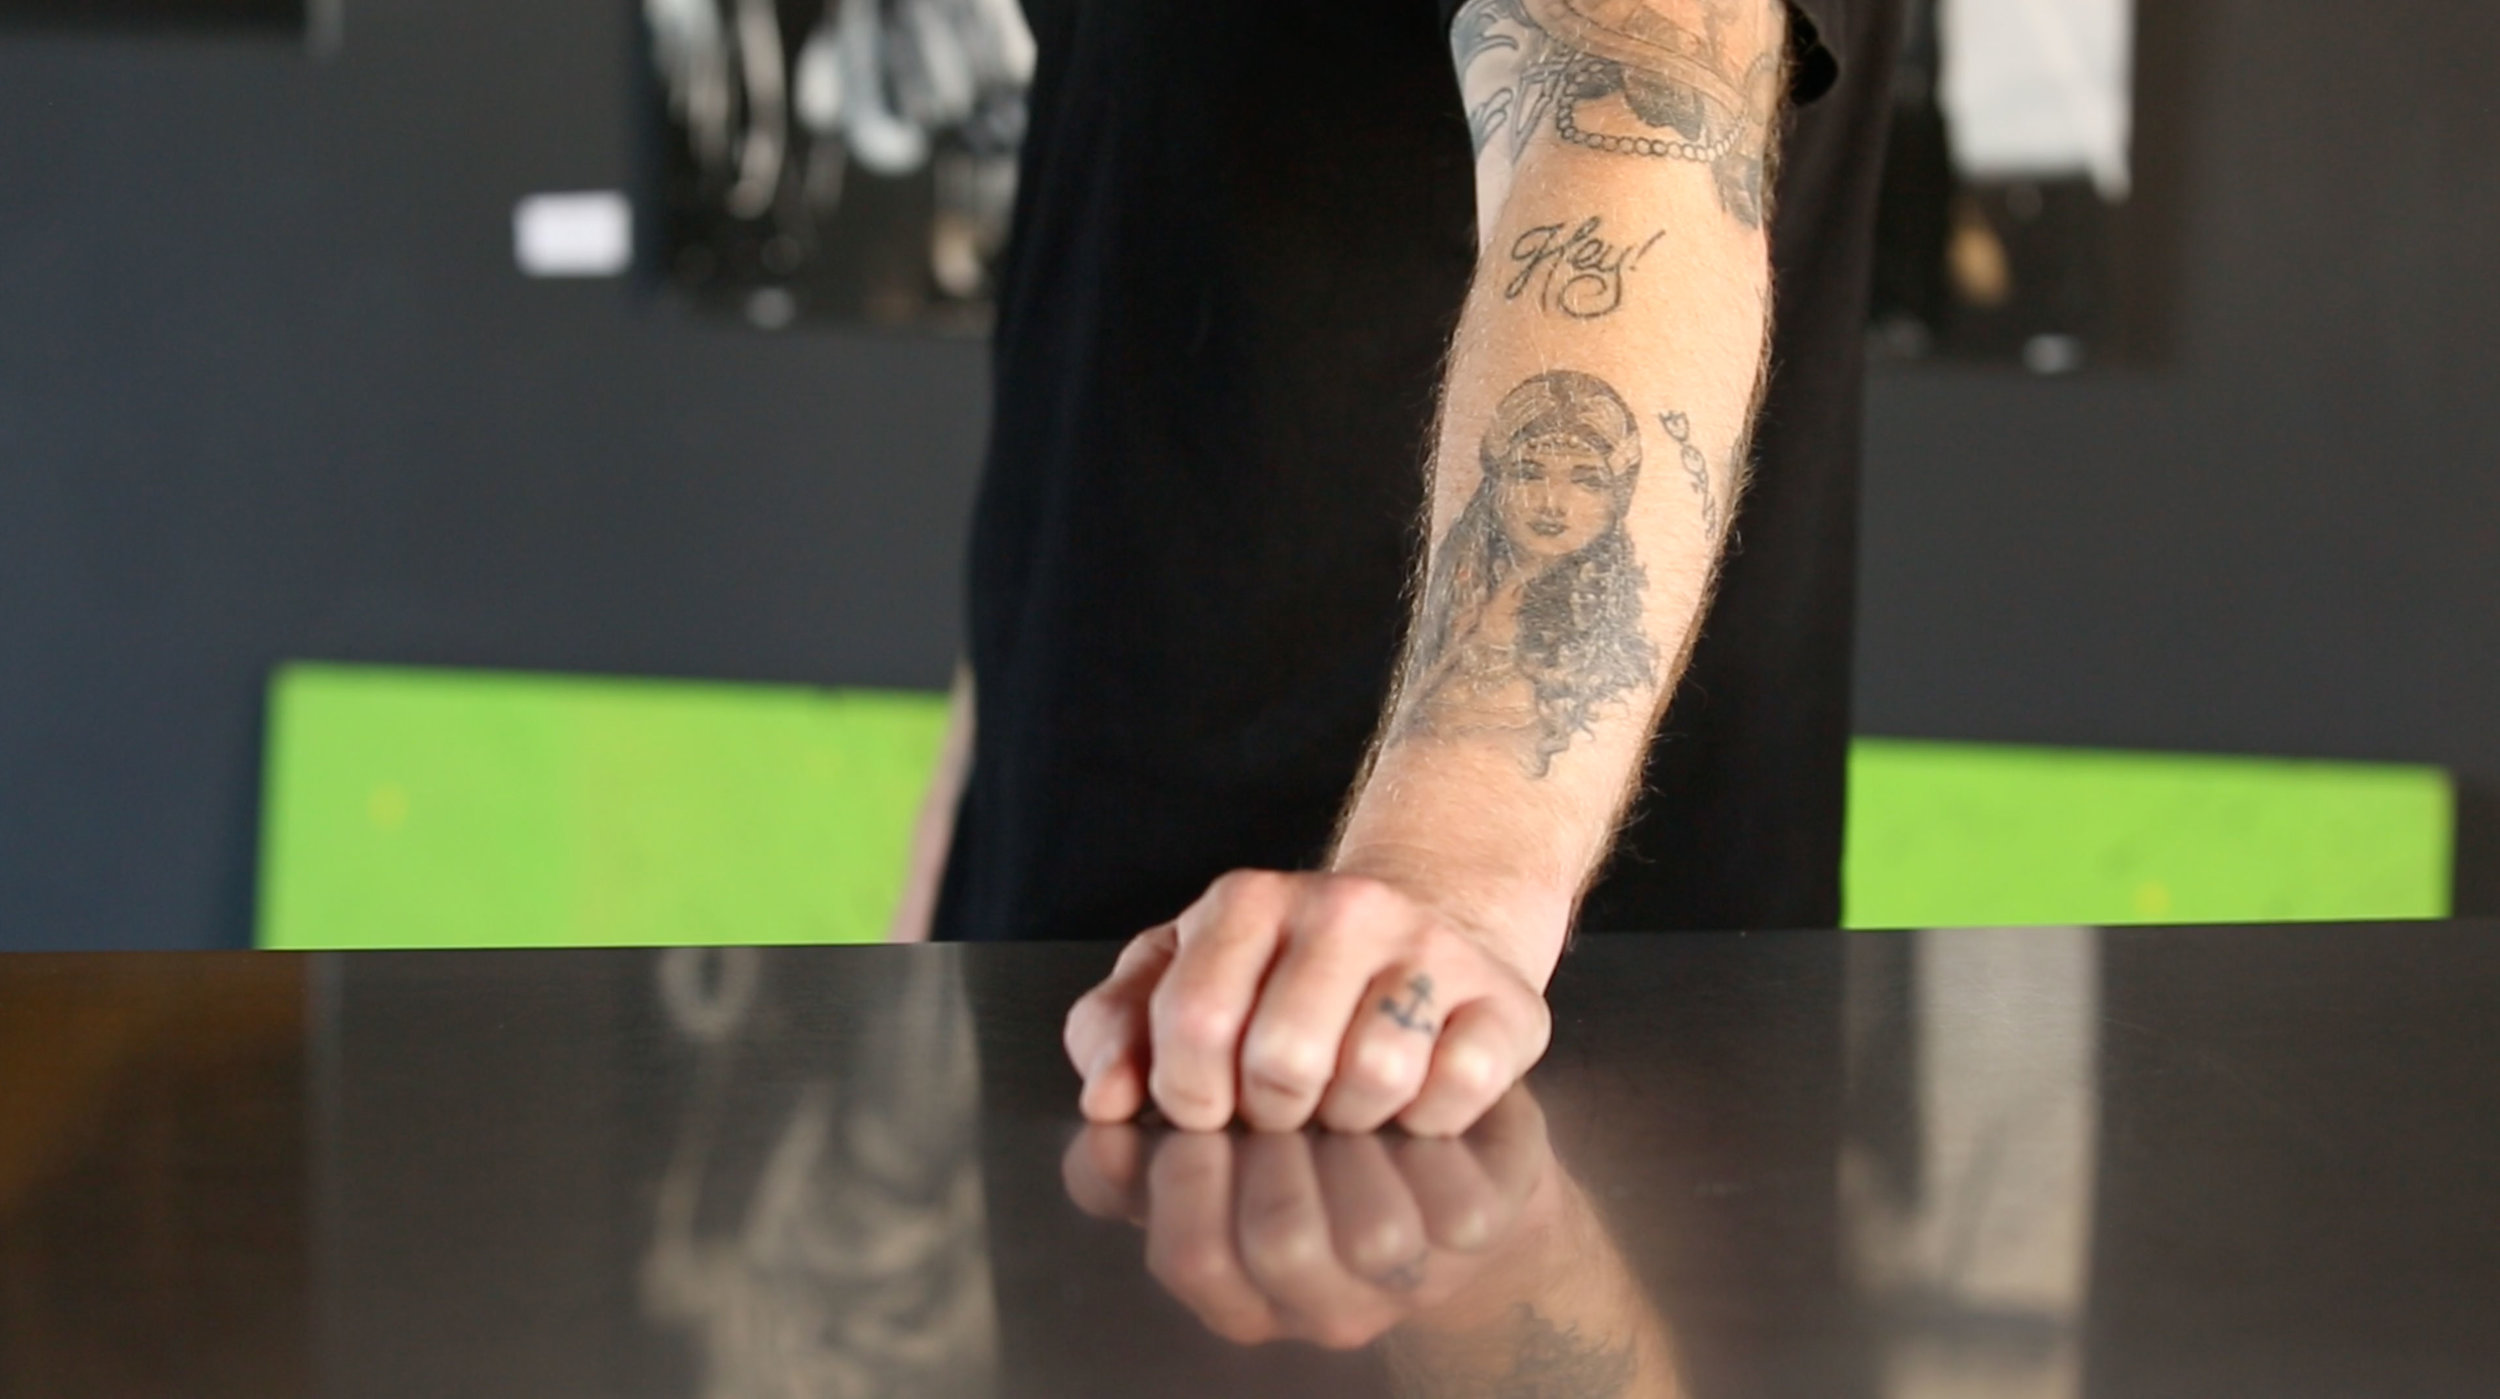 Tatooed-Arm.jpg